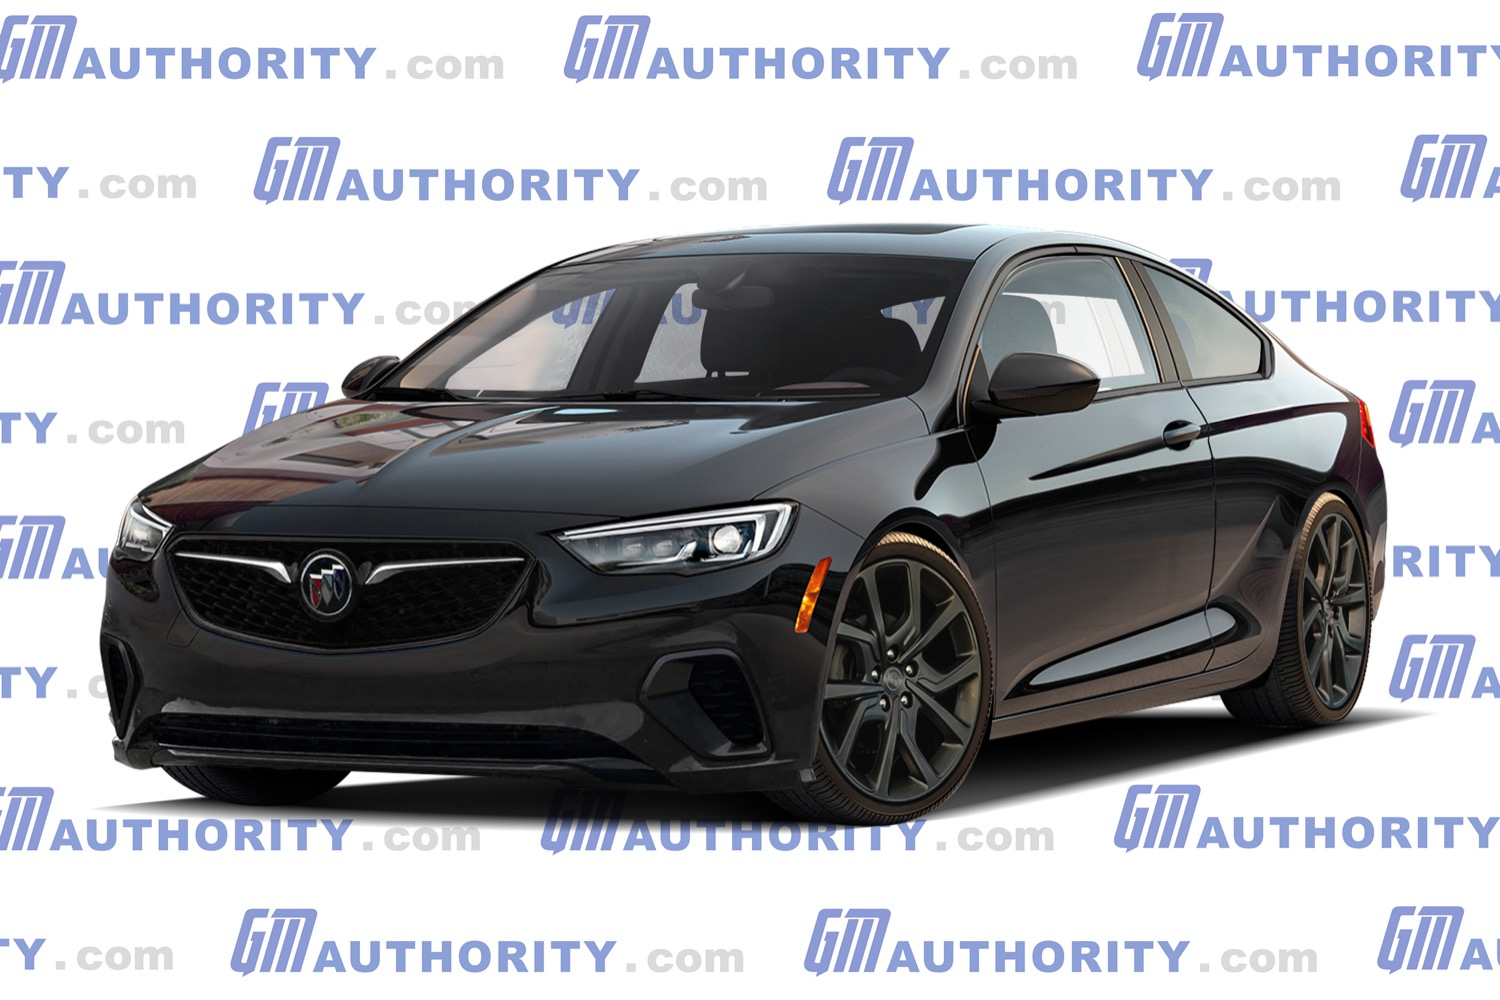 Modern Buick Regal Gnx Rendered | Gm Authority Where Is The 2022 Buick Regal Built